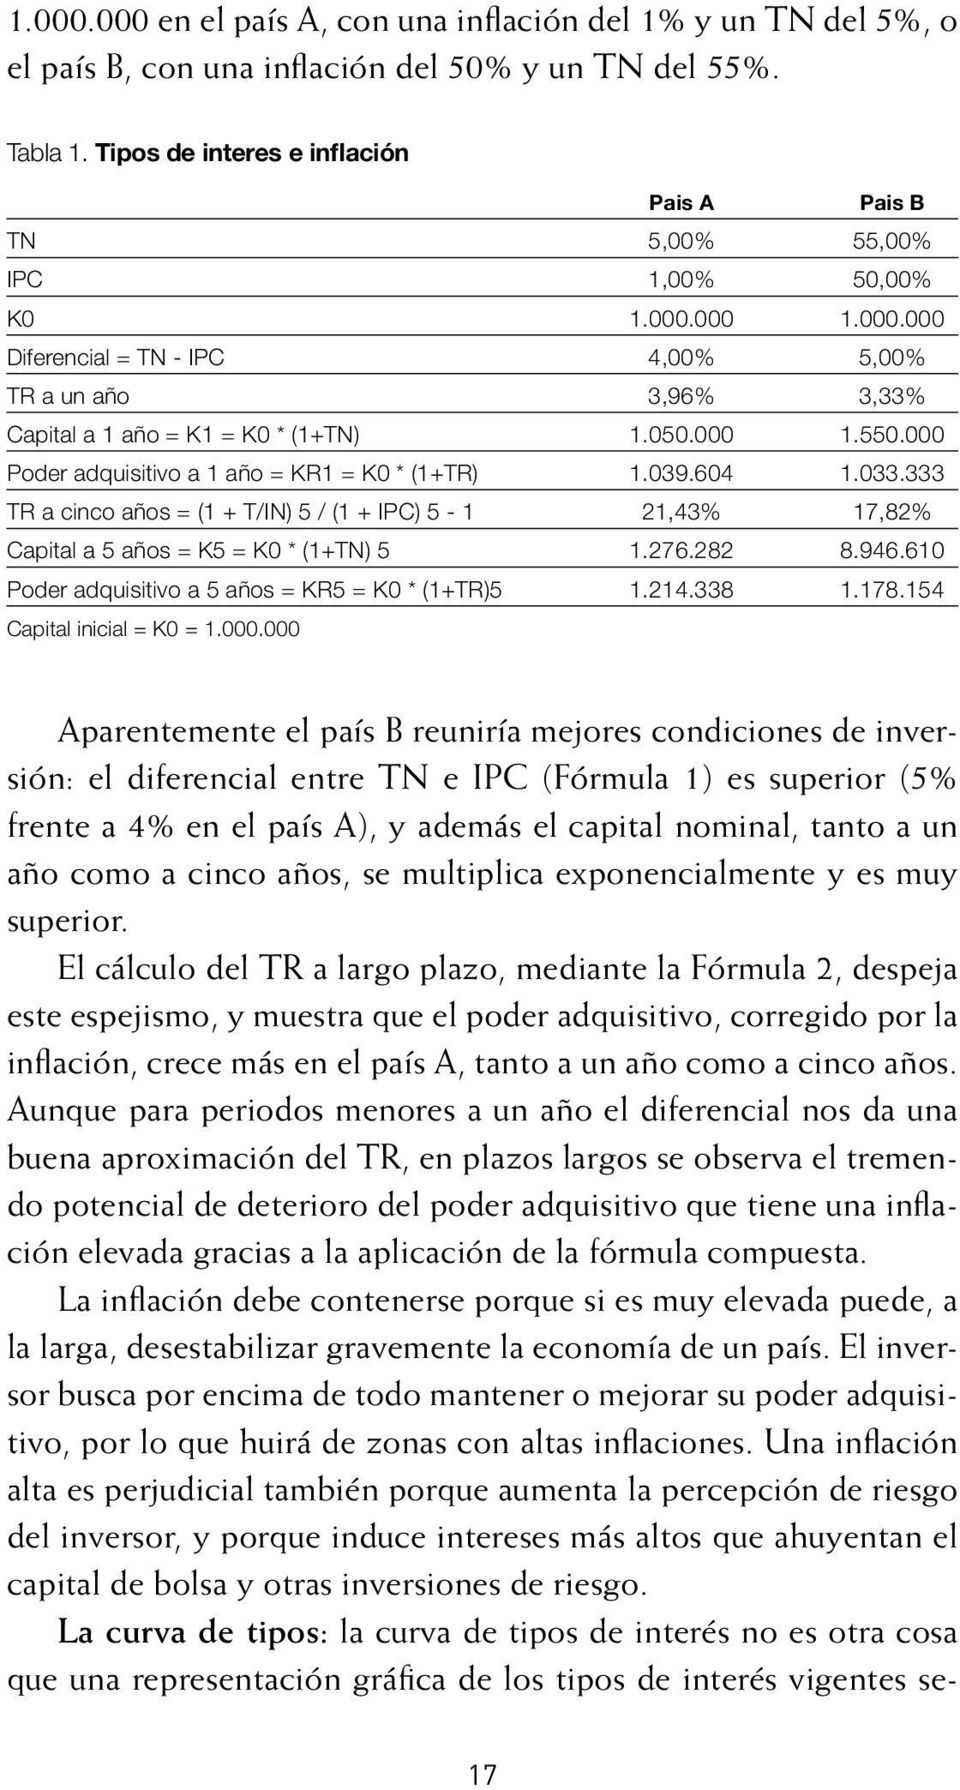 000 1.550.000 poder adquisitivo a 1 año = KR1 = K0 * (1+TR) 1.039.604 1.033.333 TR a cinco años = (1 + T/IN) 5 / (1 + IPC) 5-1 21,43% 17,82% capital a 5 años = K5 = K0 * (1+TN) 5 1.276.282 8.946.